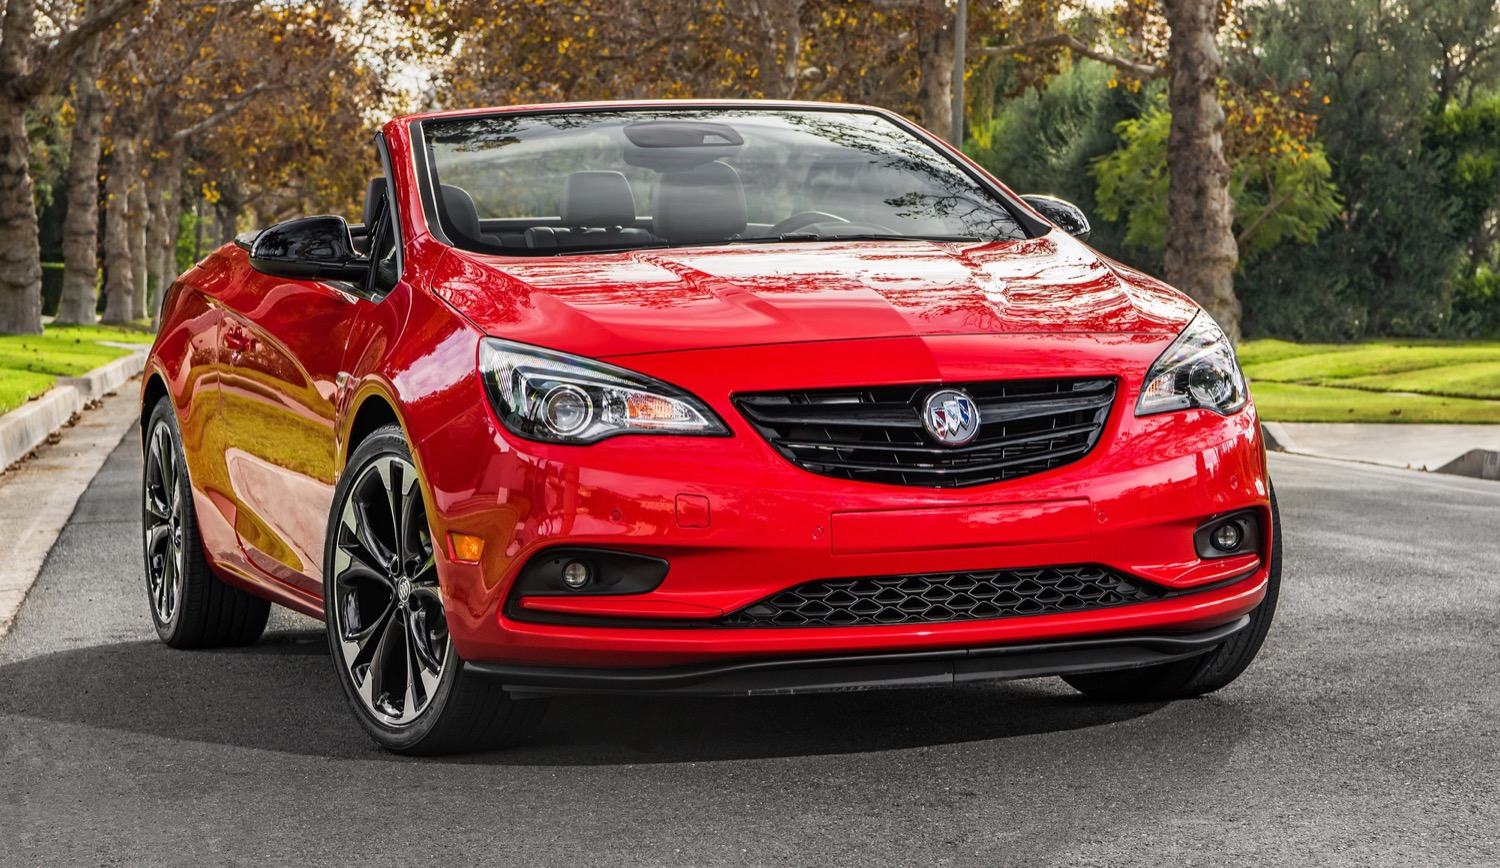 Buick Cascada Discount Cuts Price 16 Percent September 2019 New 2022 Buick Cascada Inventory, Images, Incentives